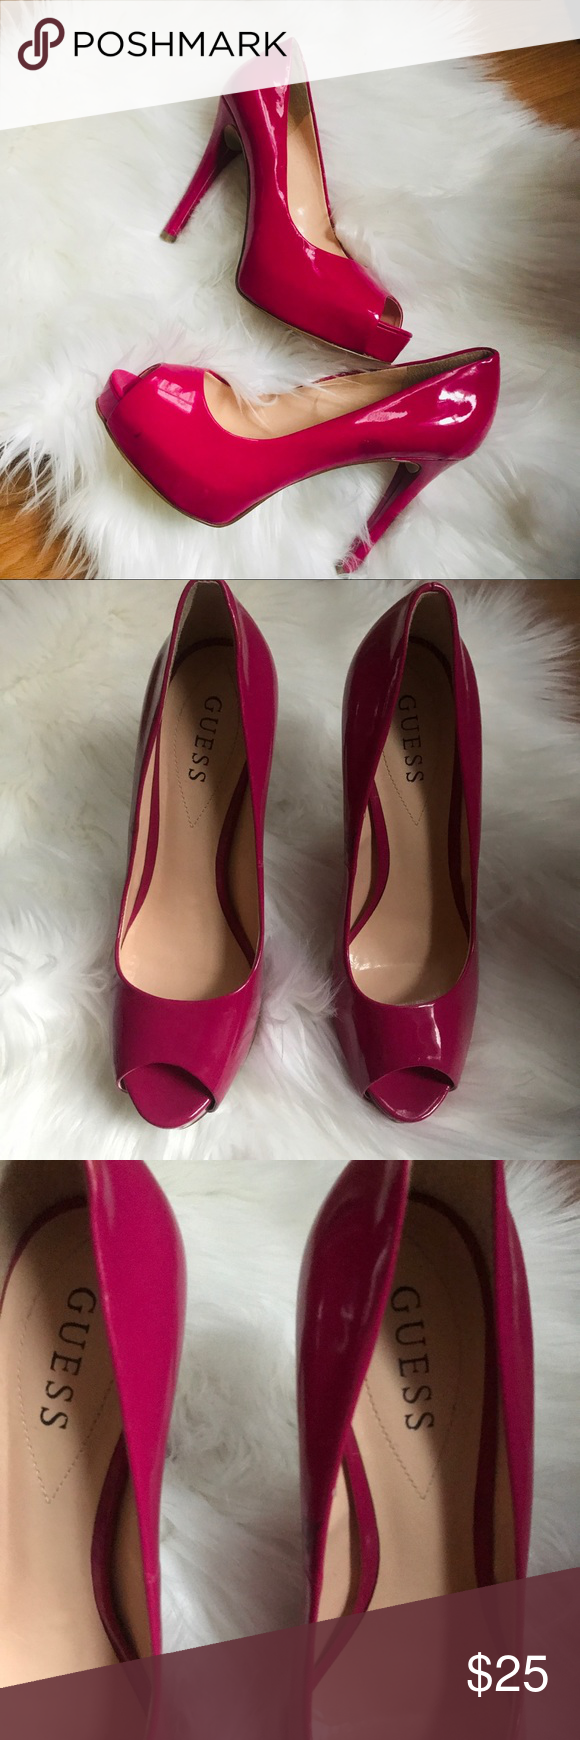 99e42a3f32c Guess Shoes | Guess Patches Fuschia Pink Platform Pumps 8.5 | Color ...